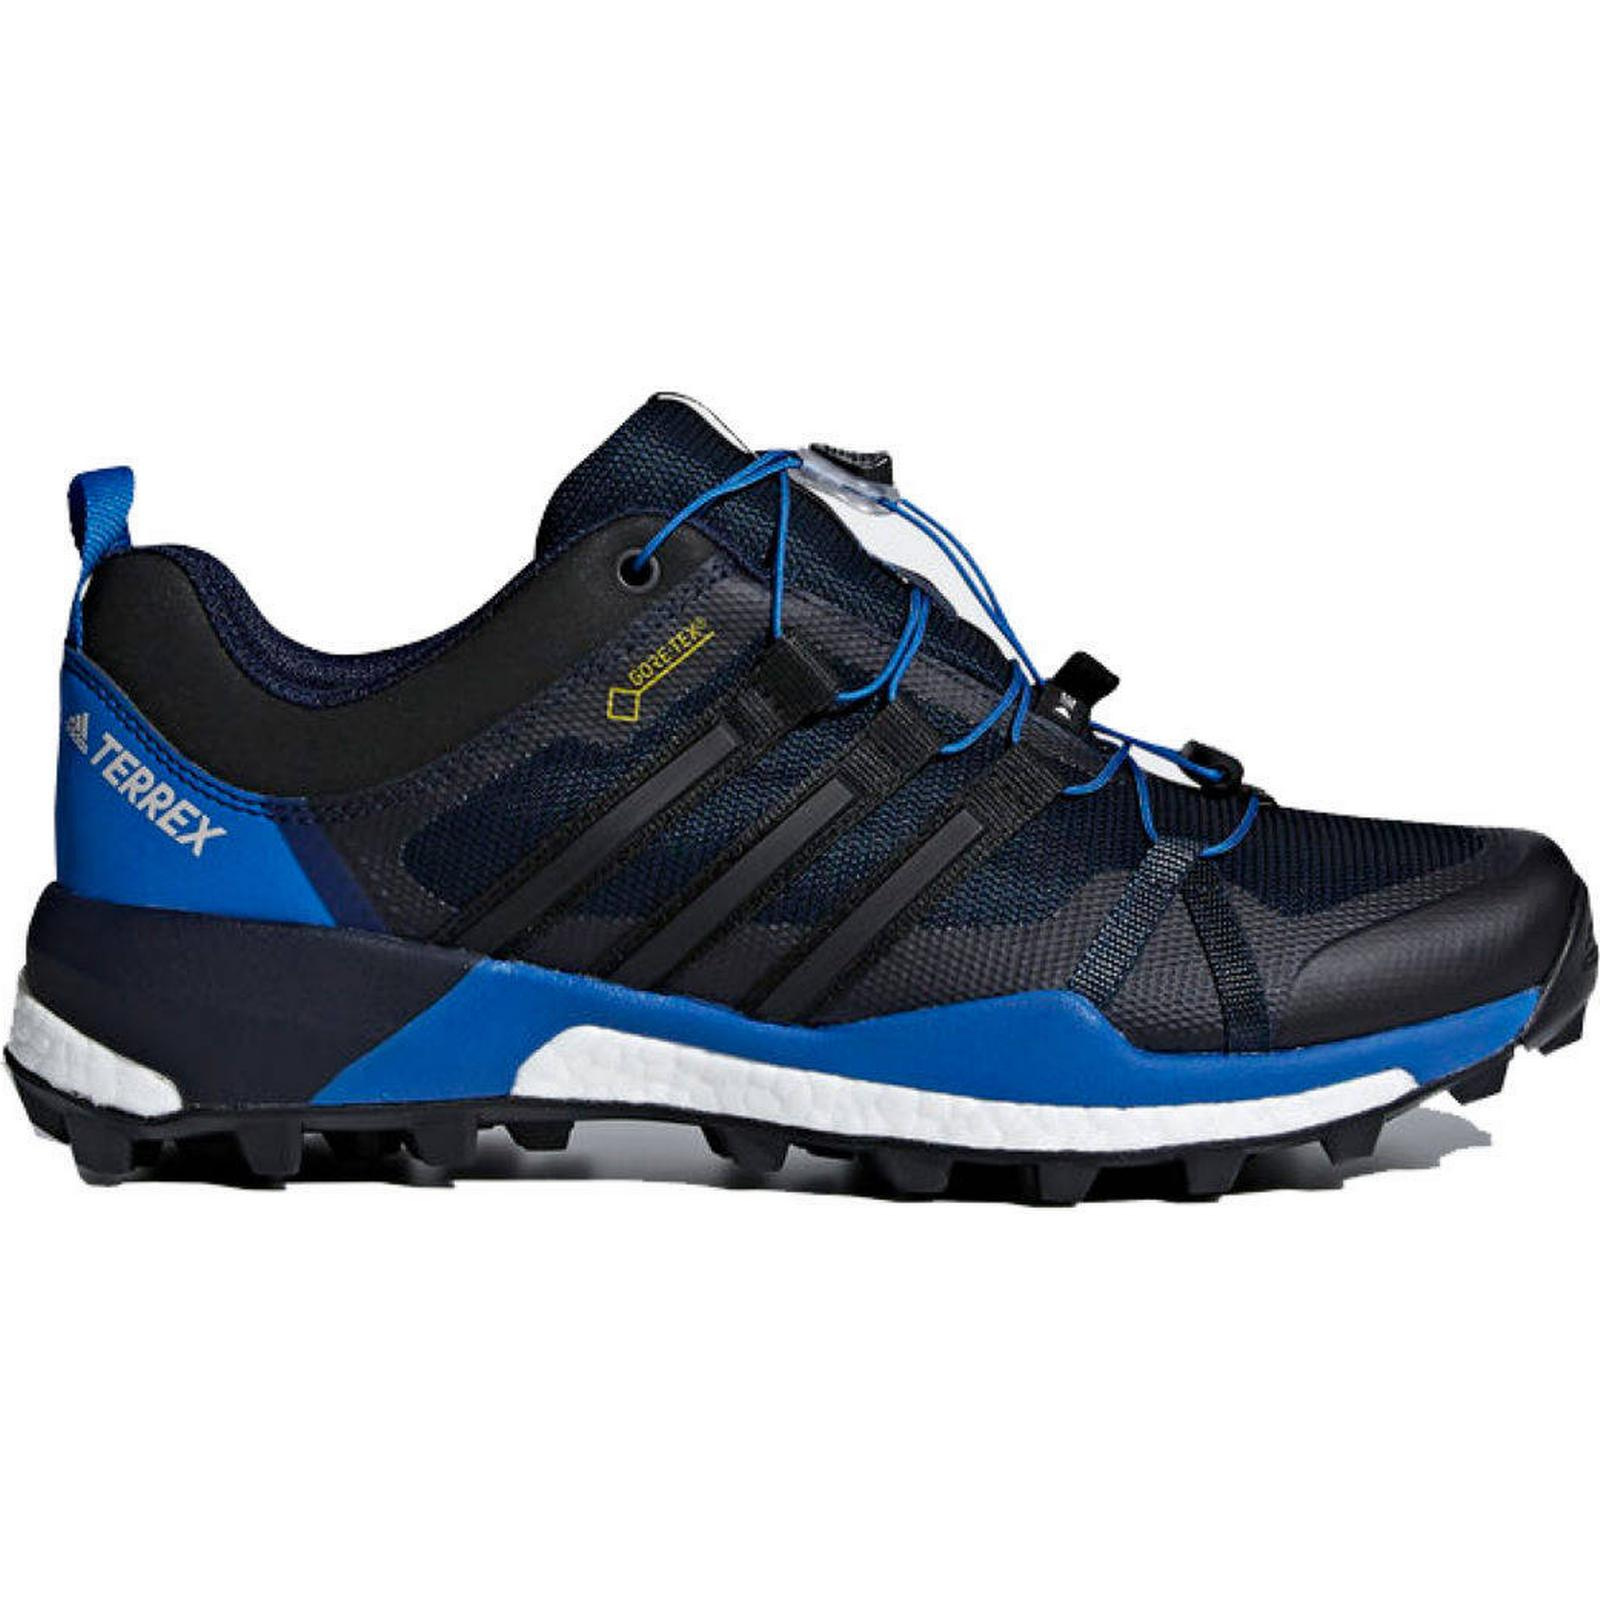 Wiggle Online Cycle GTX Shop adidas TERREX SKYCHASER GTX Cycle Shoes f6cd6a